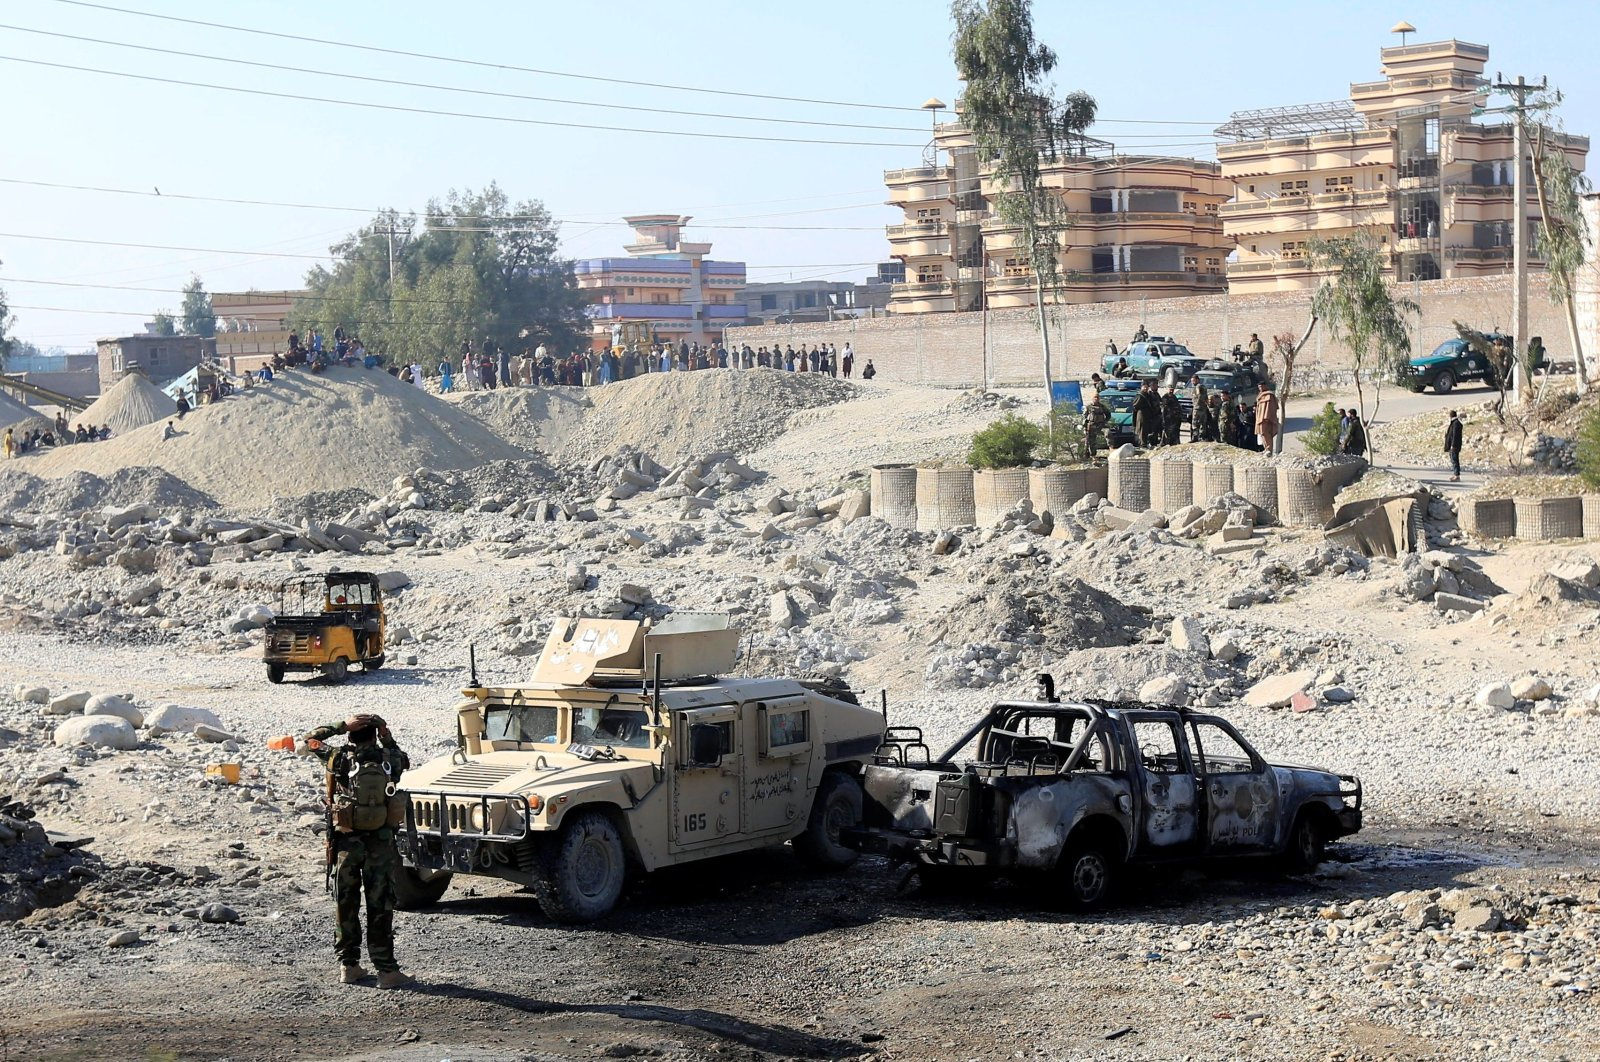 An Afghan National Army soldier inspects the wreckage of a burnt army car at the site of a blast in Jalalabad, Afghanistan, Jan. 28, 2021. (Reuters Photo)